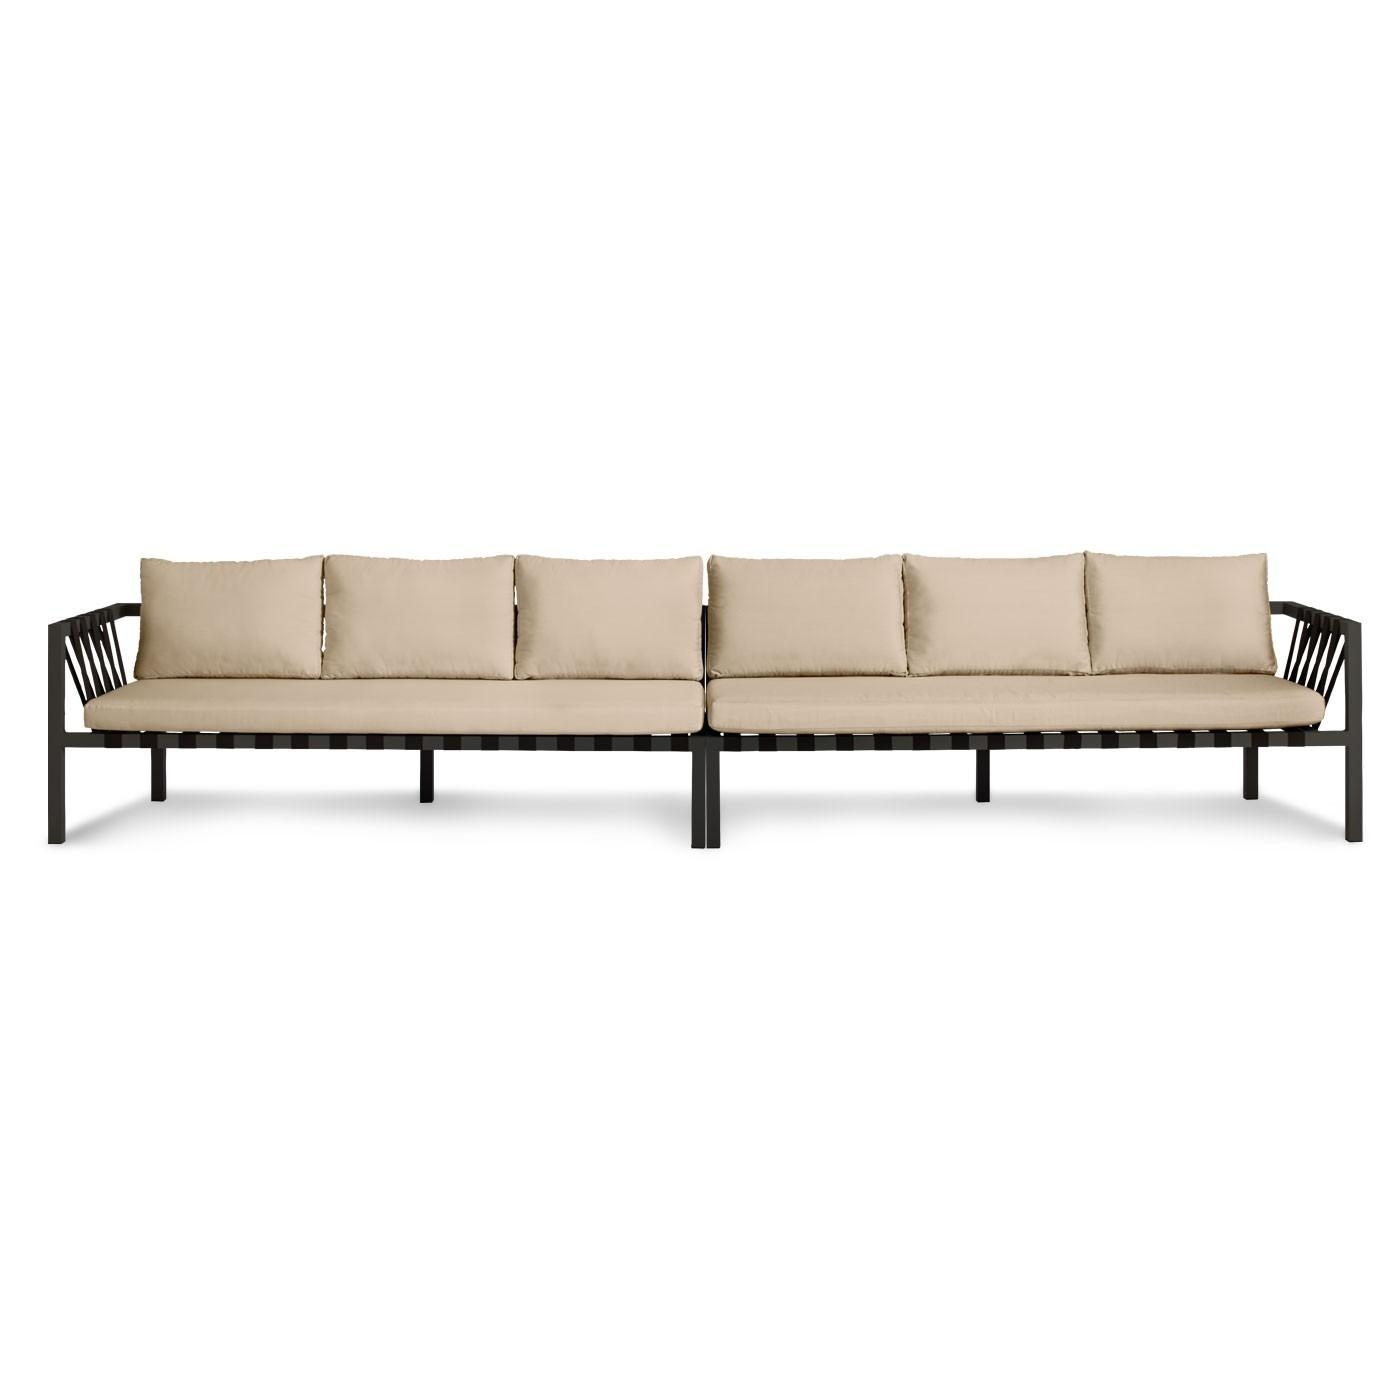 Jibe Extra Long Modern Outdoor Sectional Sofa | Blu Dot Throughout Long Sectional Sofa With Chaise (View 17 of 20)